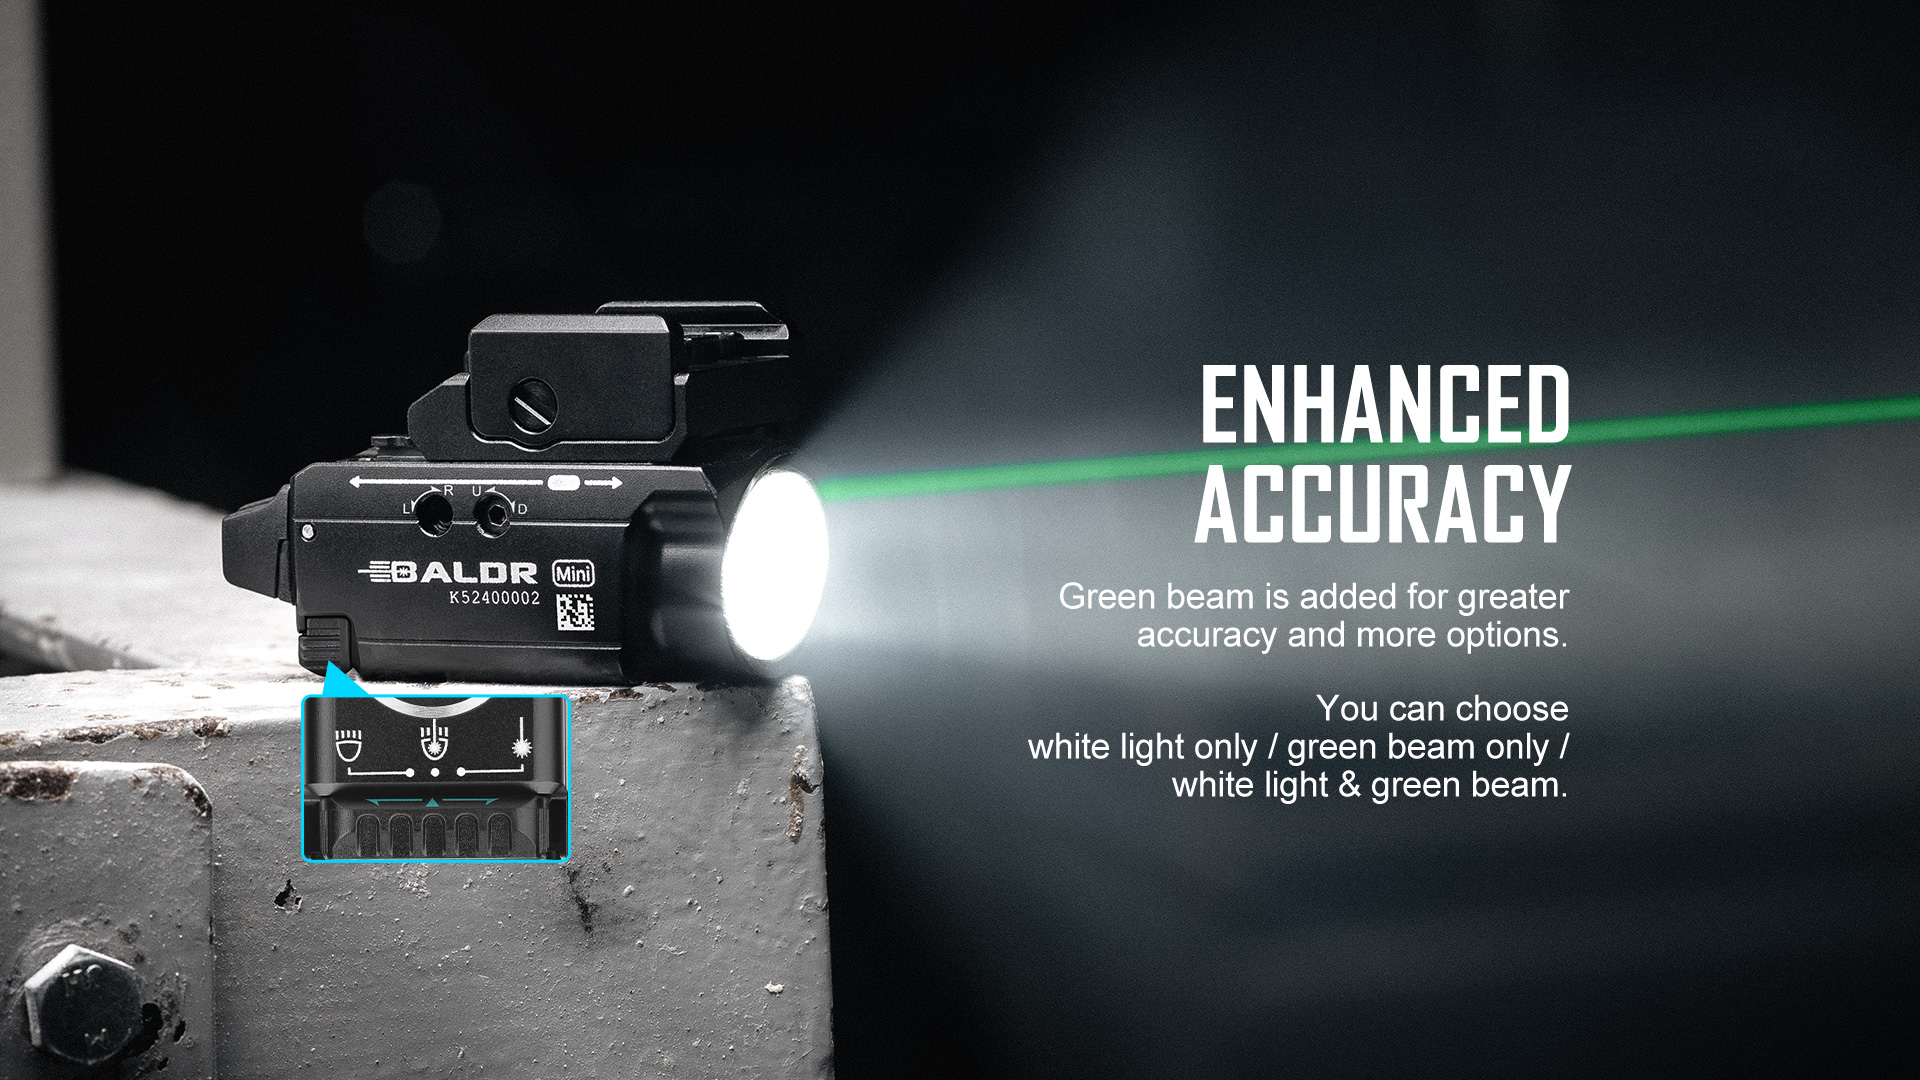 Baldr Mini with a combination of white and green lasers